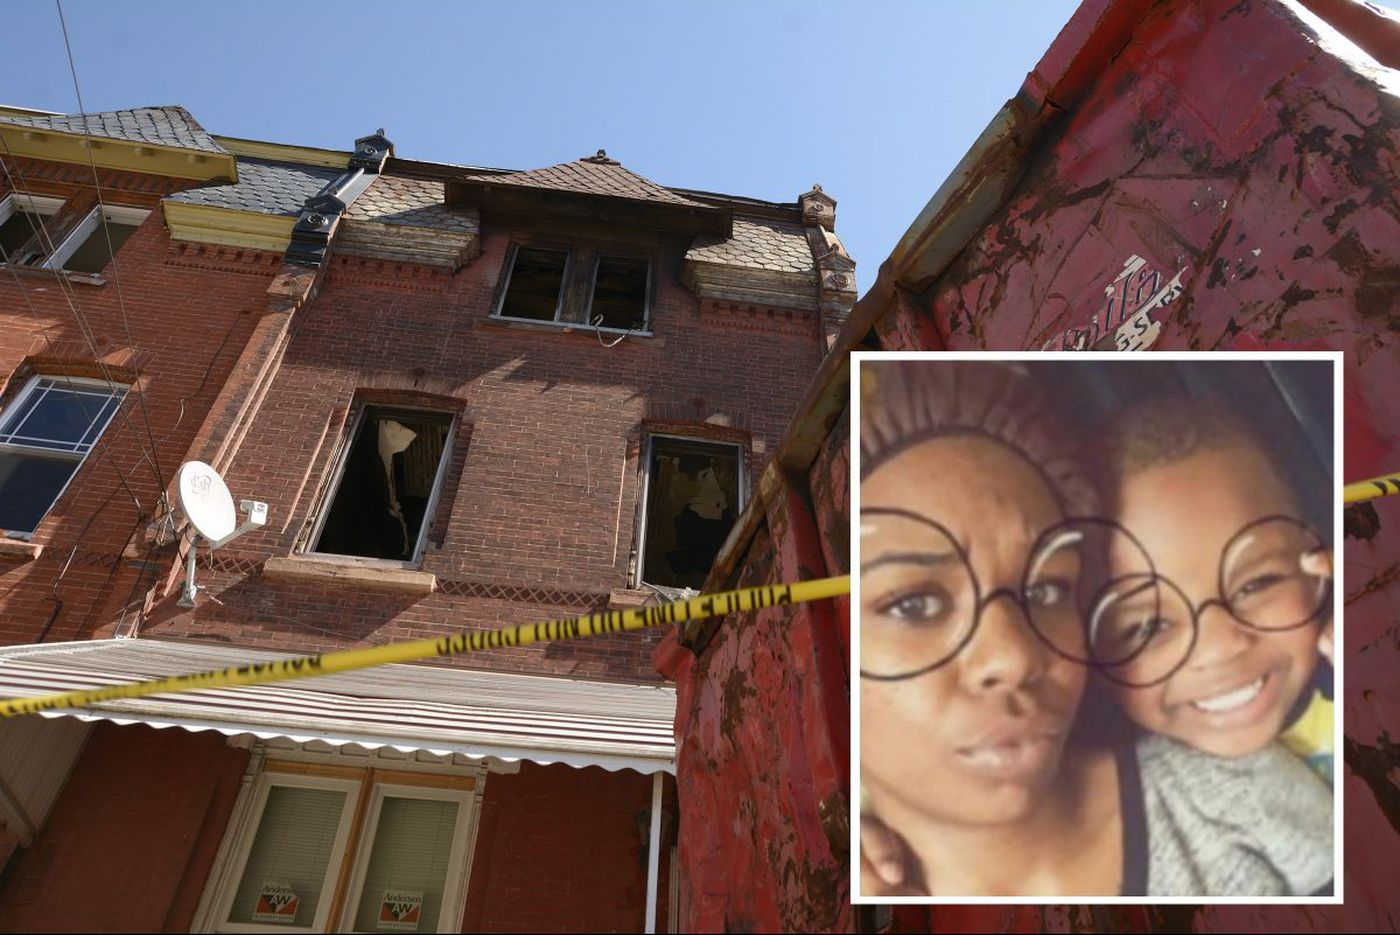 Lawsuit tied to fatal N. Philly boarding house blaze adds to landlord's legal, financial woes